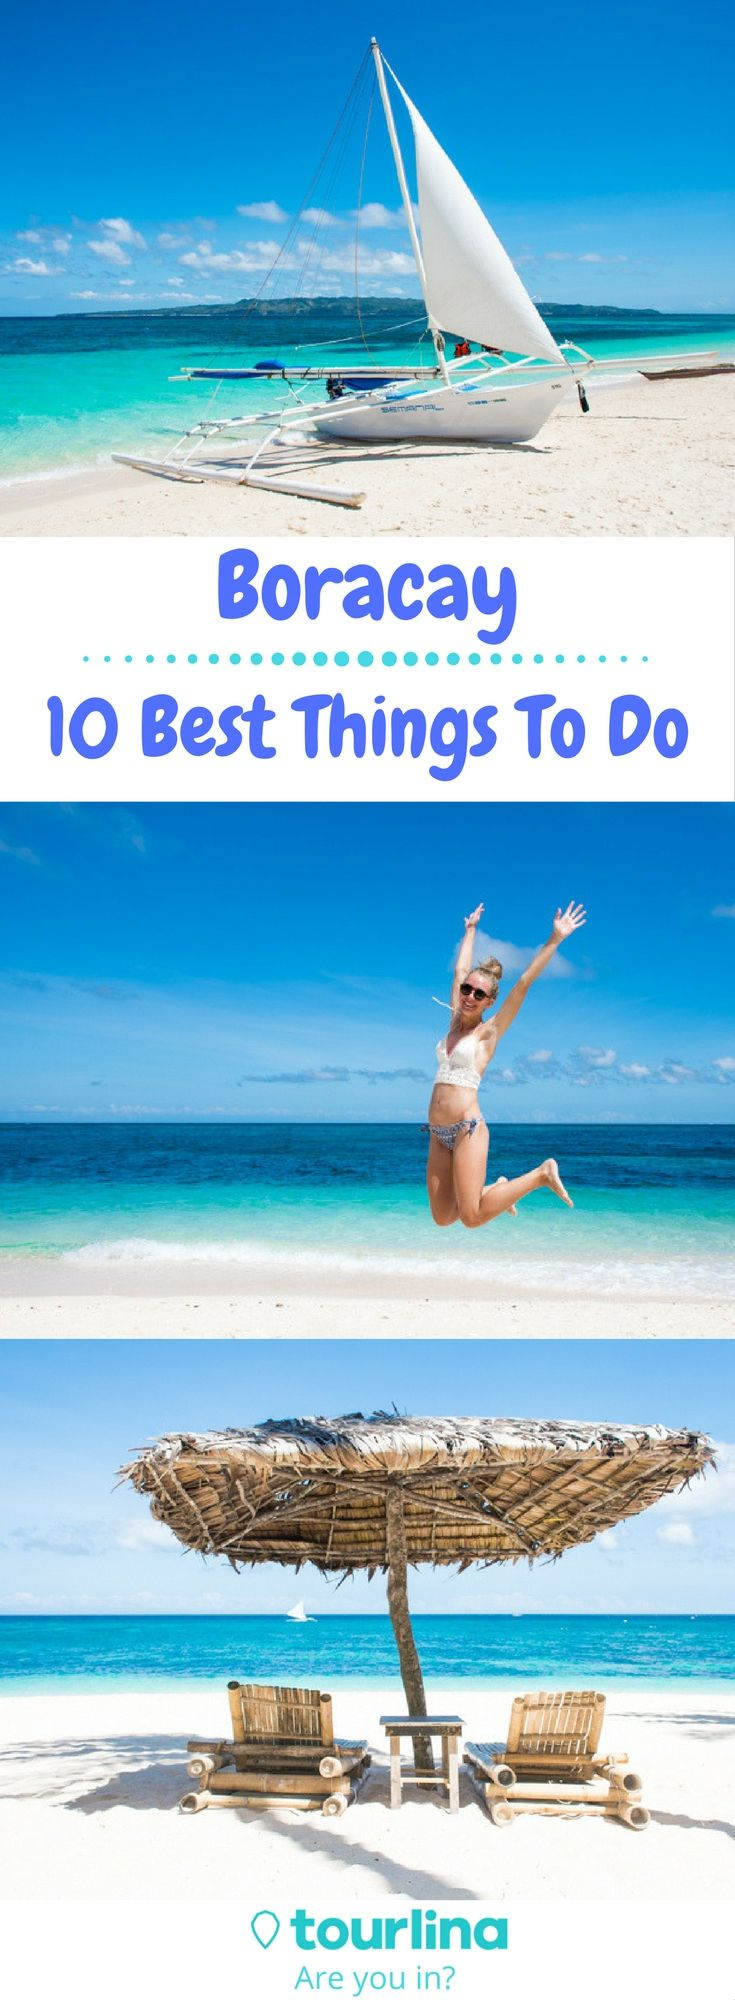 Boracay - 10 Best Things To Do